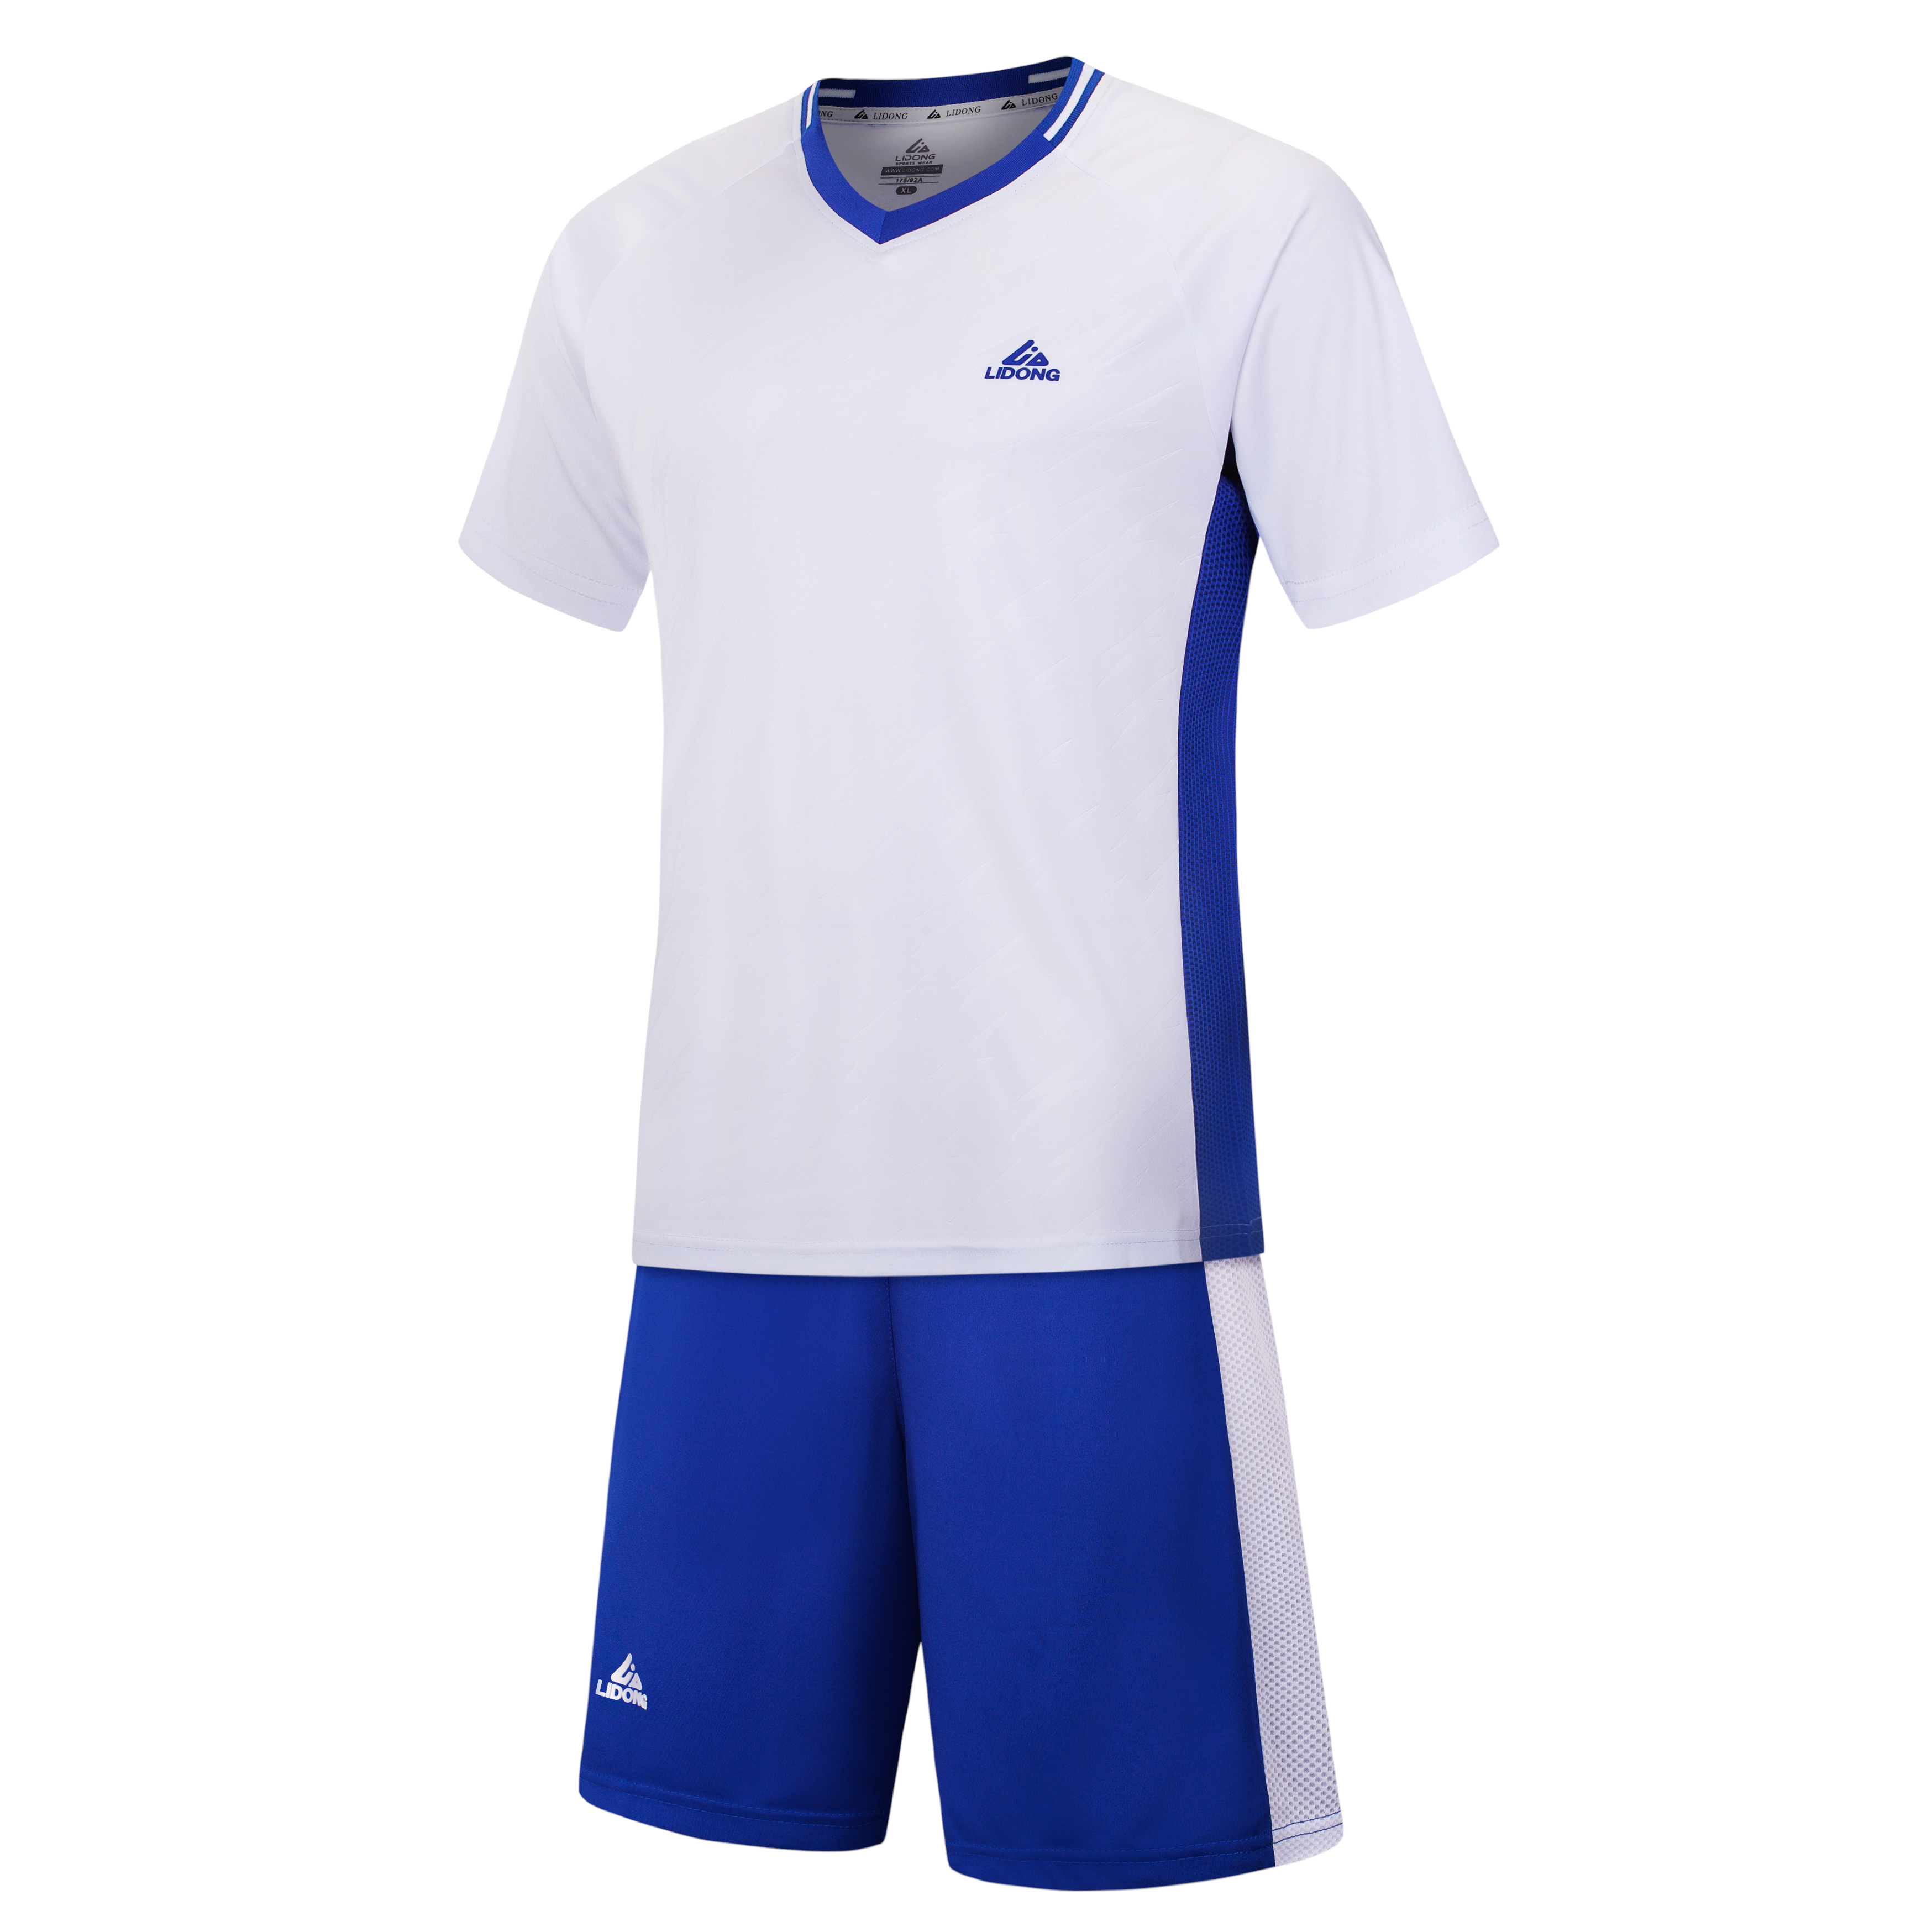 Custom Made Voetbal Jersey Kleding groothandel, 100% Polyester Sublimatie Voetbal Jersey